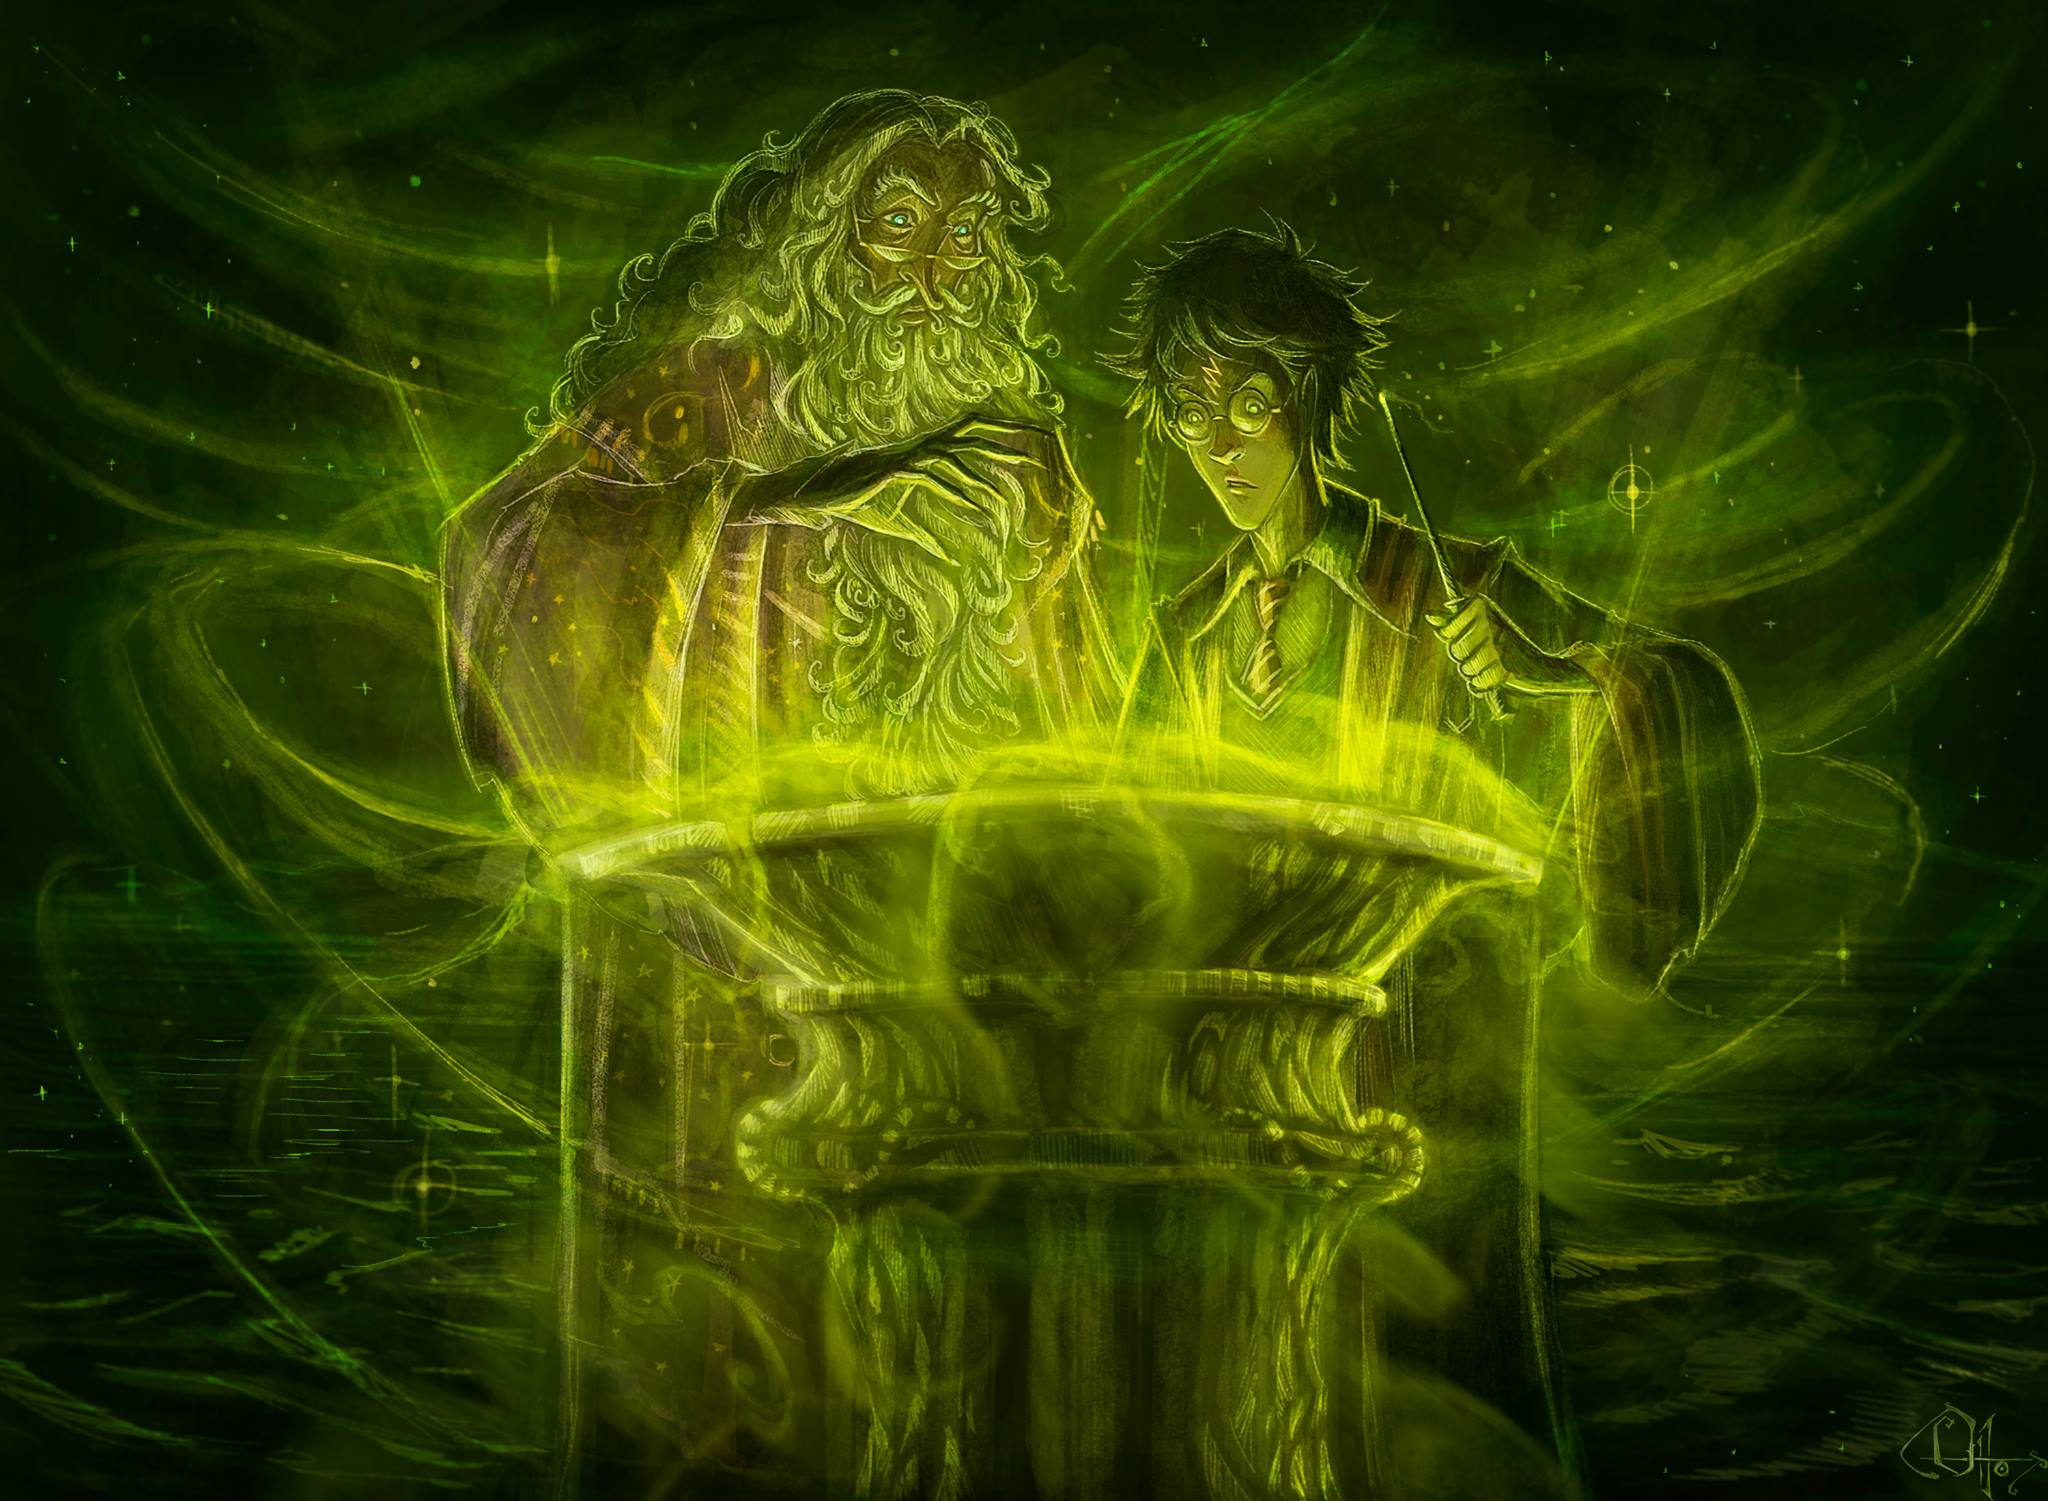 Dumbledore and Harry in the Cave